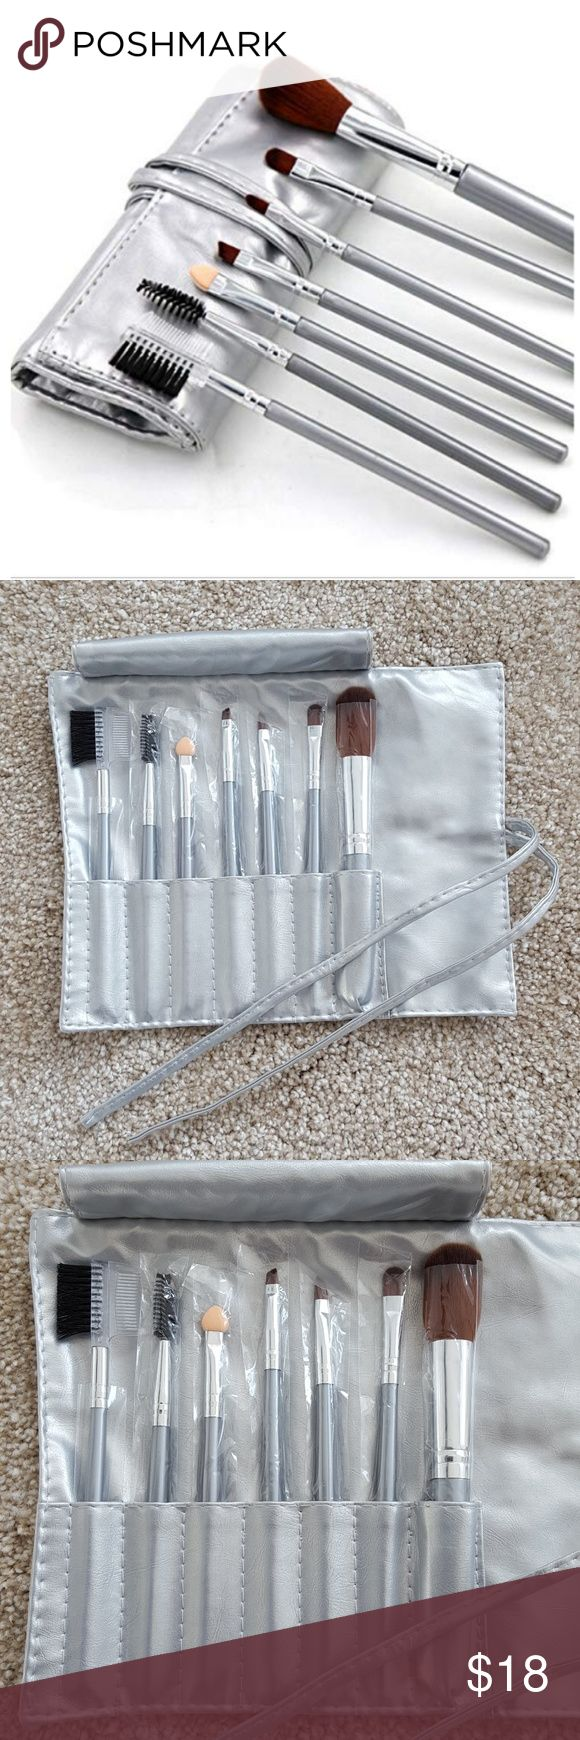 Make Up Brush 7 piece set with Case 7 piece set make-up brush w/ soft synthetic …